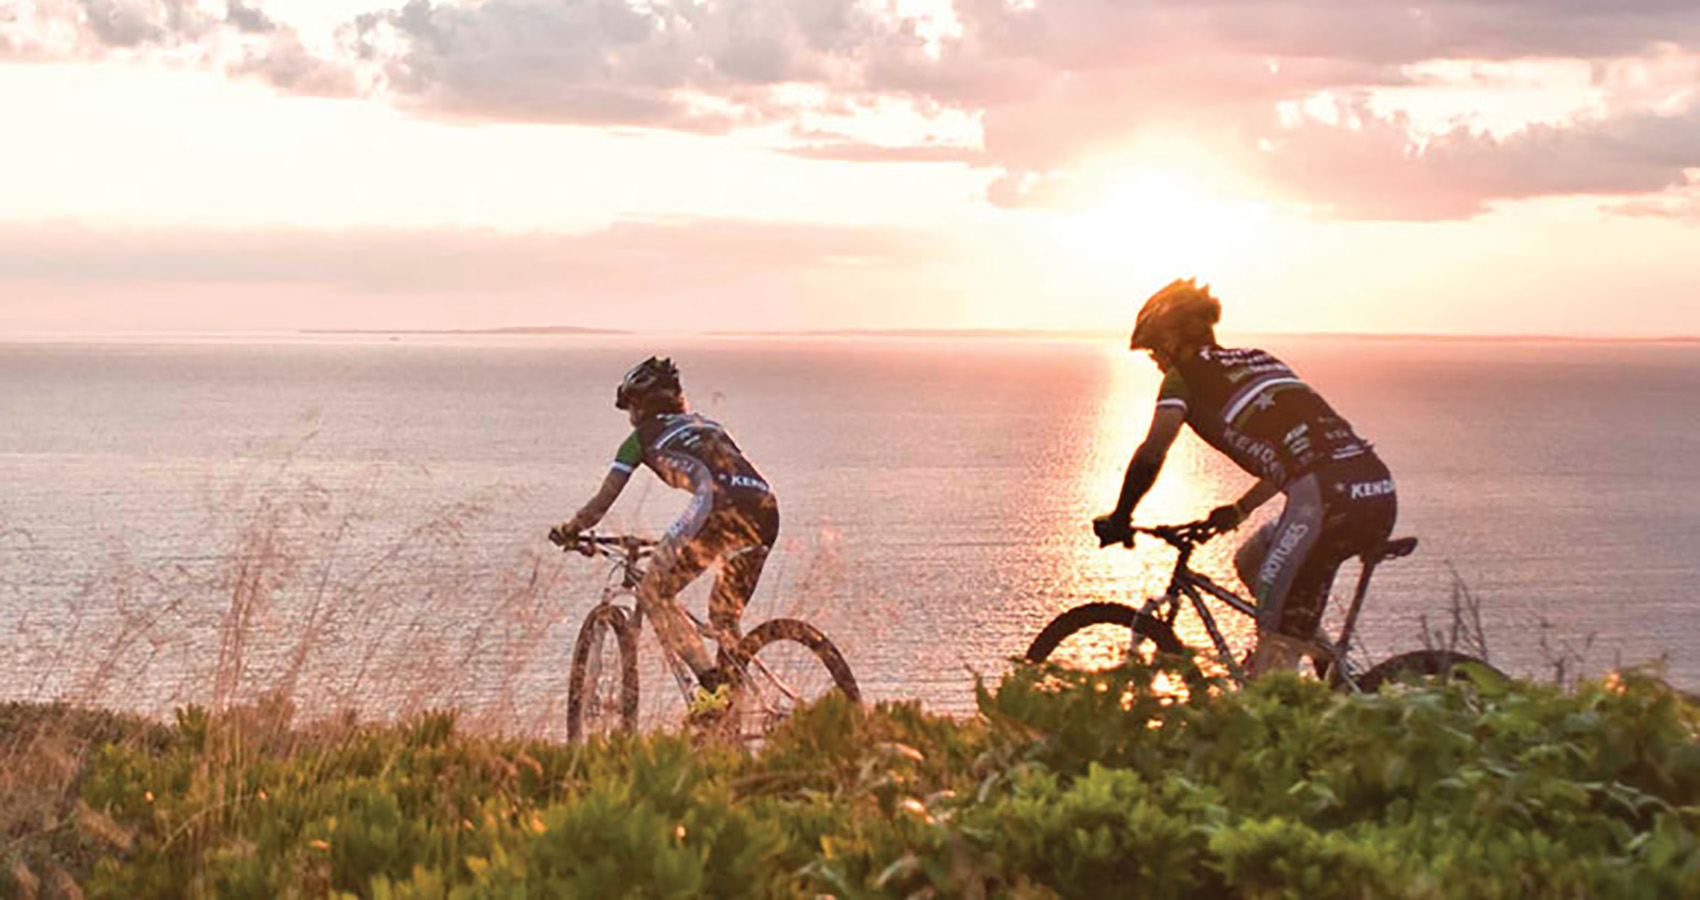 Mike Broderick and Mary McConnenoug ride their Solas into the Sunrise near the ocean